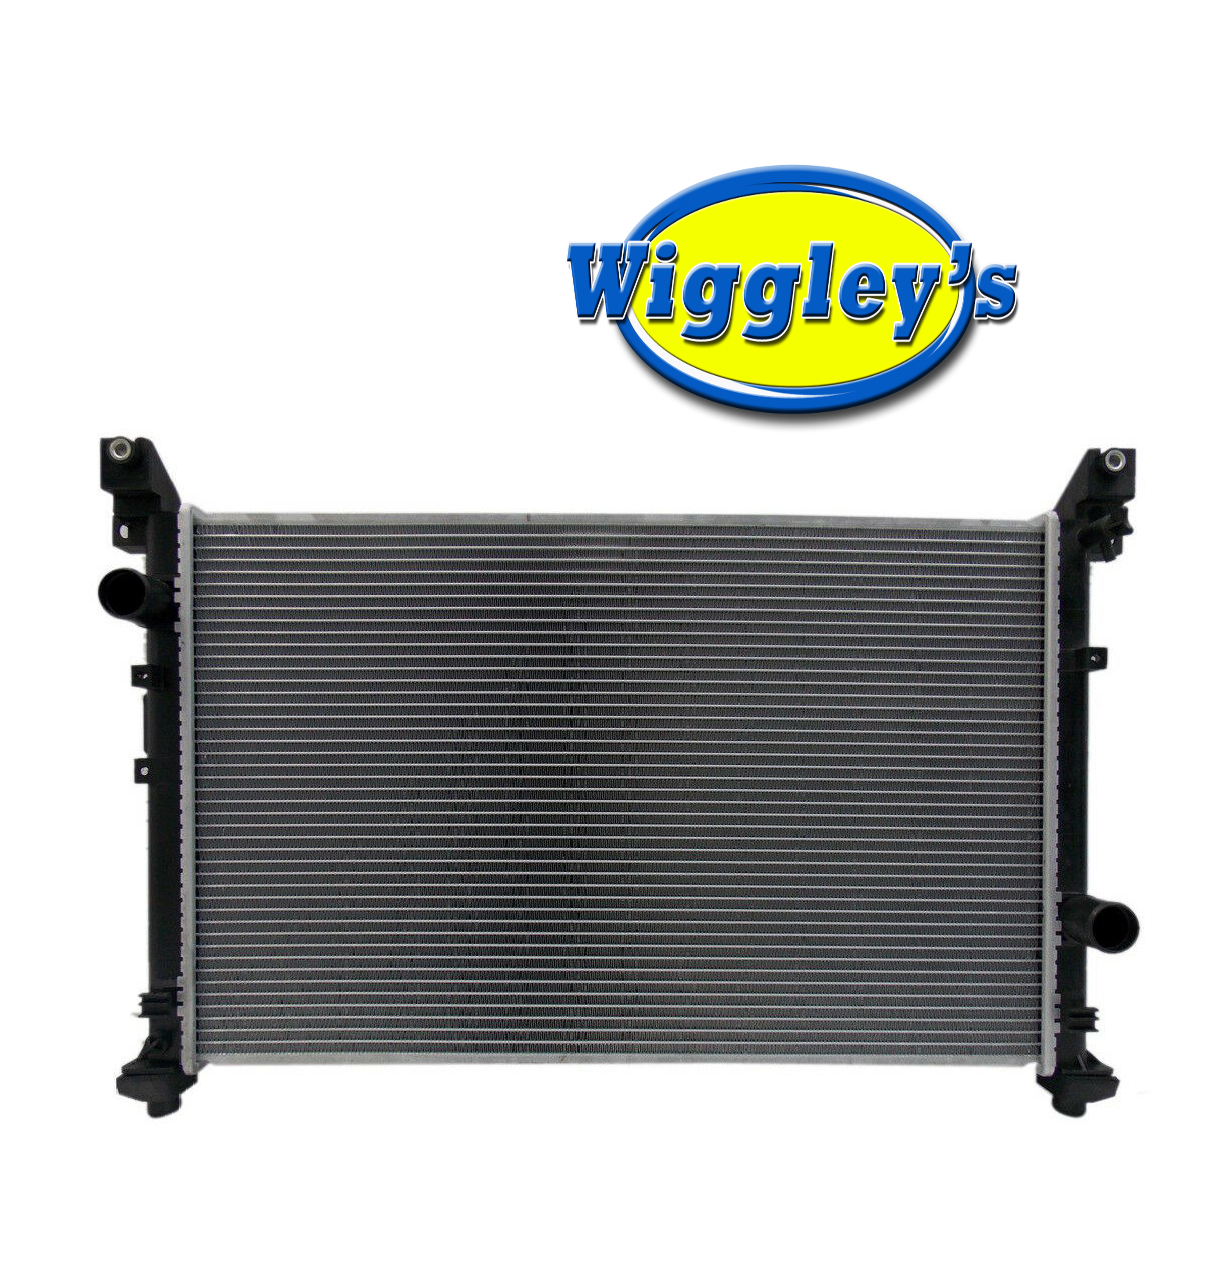 RADIATOR CH3010352 FOR 07 08 CHRYSLER PACIFICA 3.8L